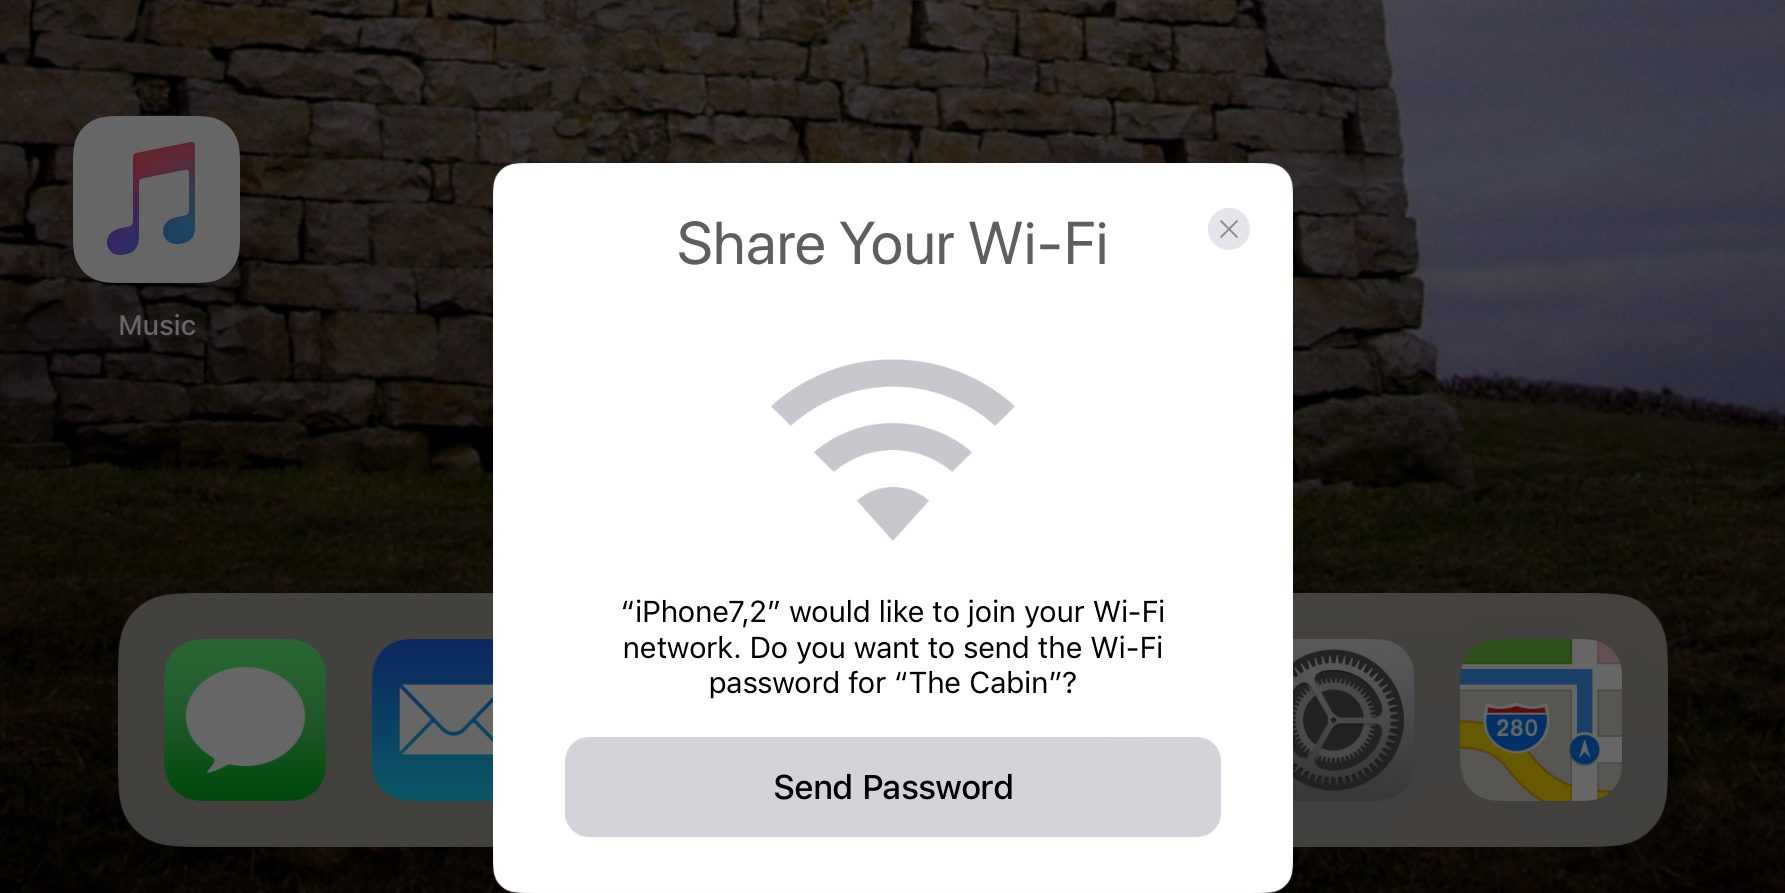 How to share Wi-Fi from your phone